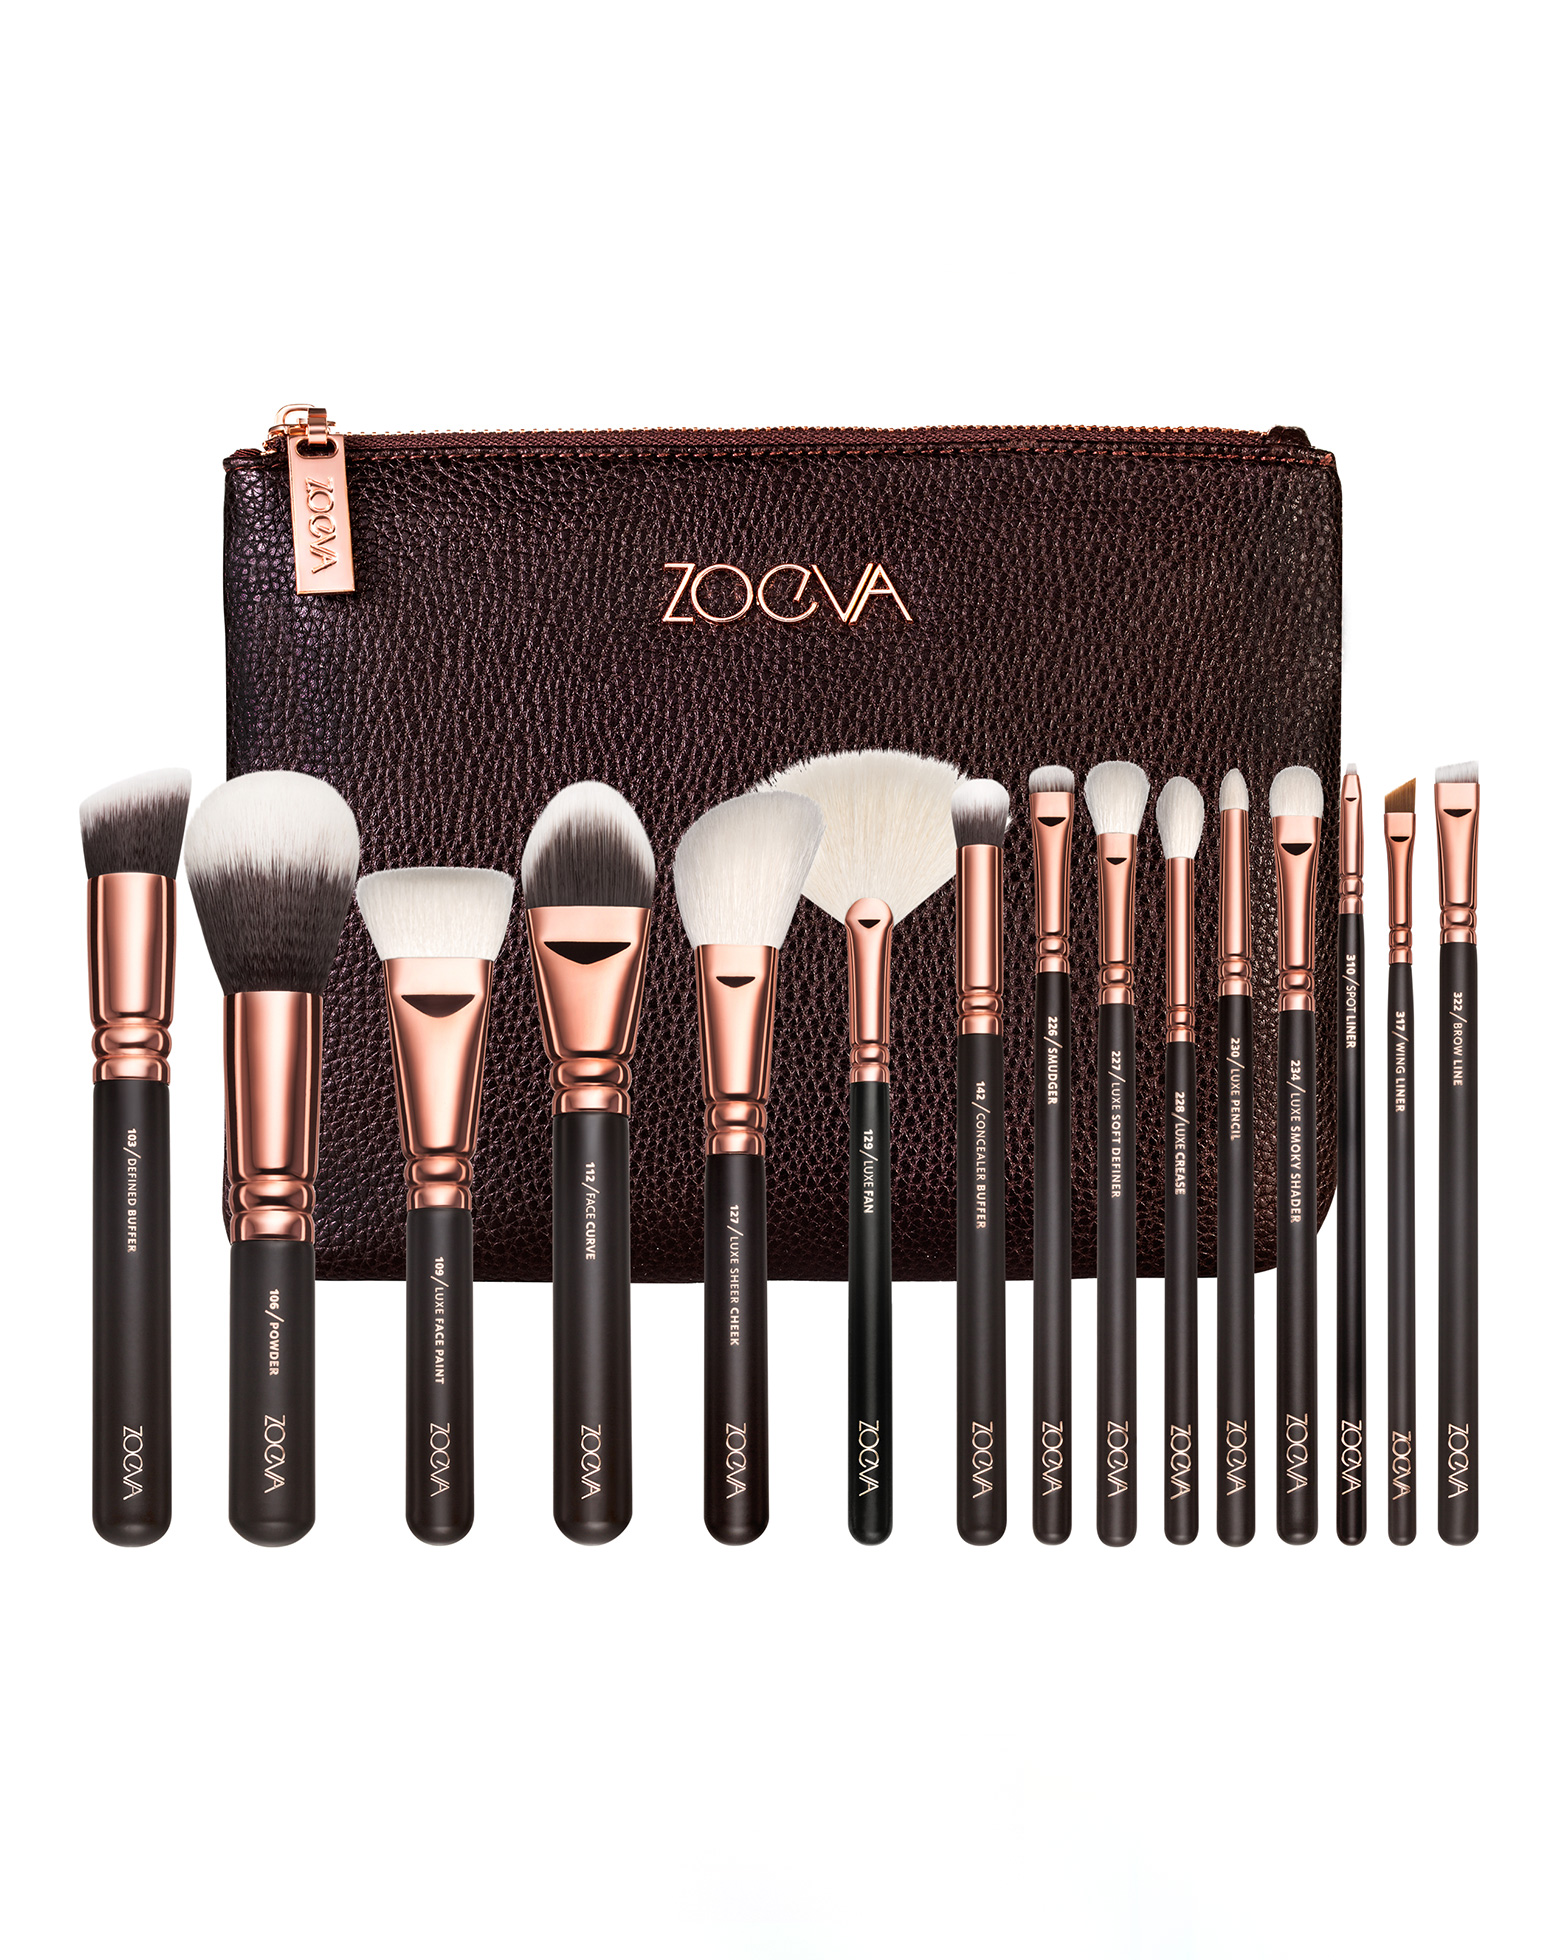 rose golden complete brush set volume 1 by zoeva. Black Bedroom Furniture Sets. Home Design Ideas